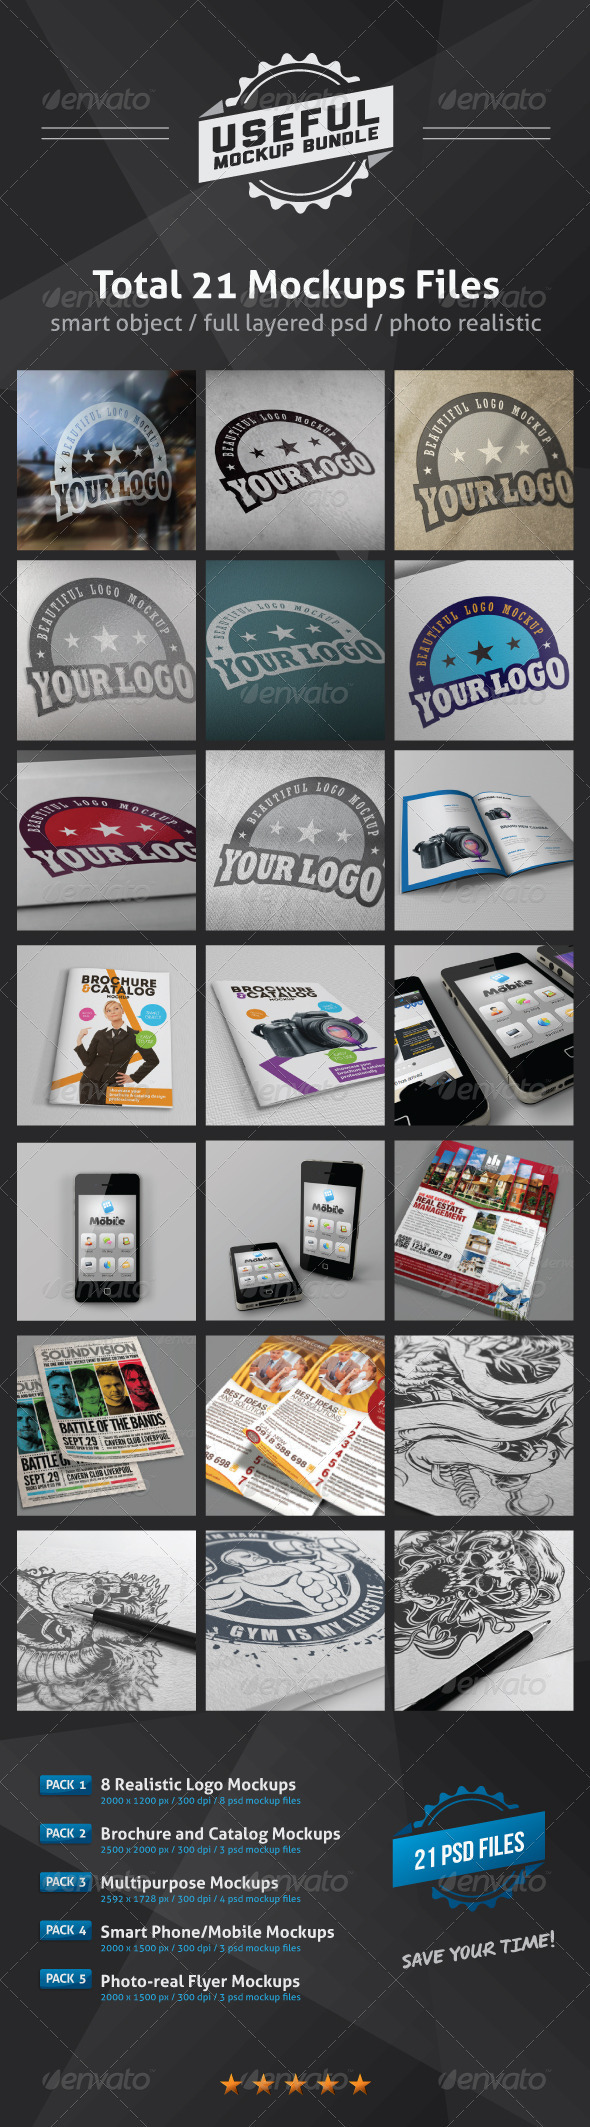 GraphicRiver Useful Mockups Bundle 2864081